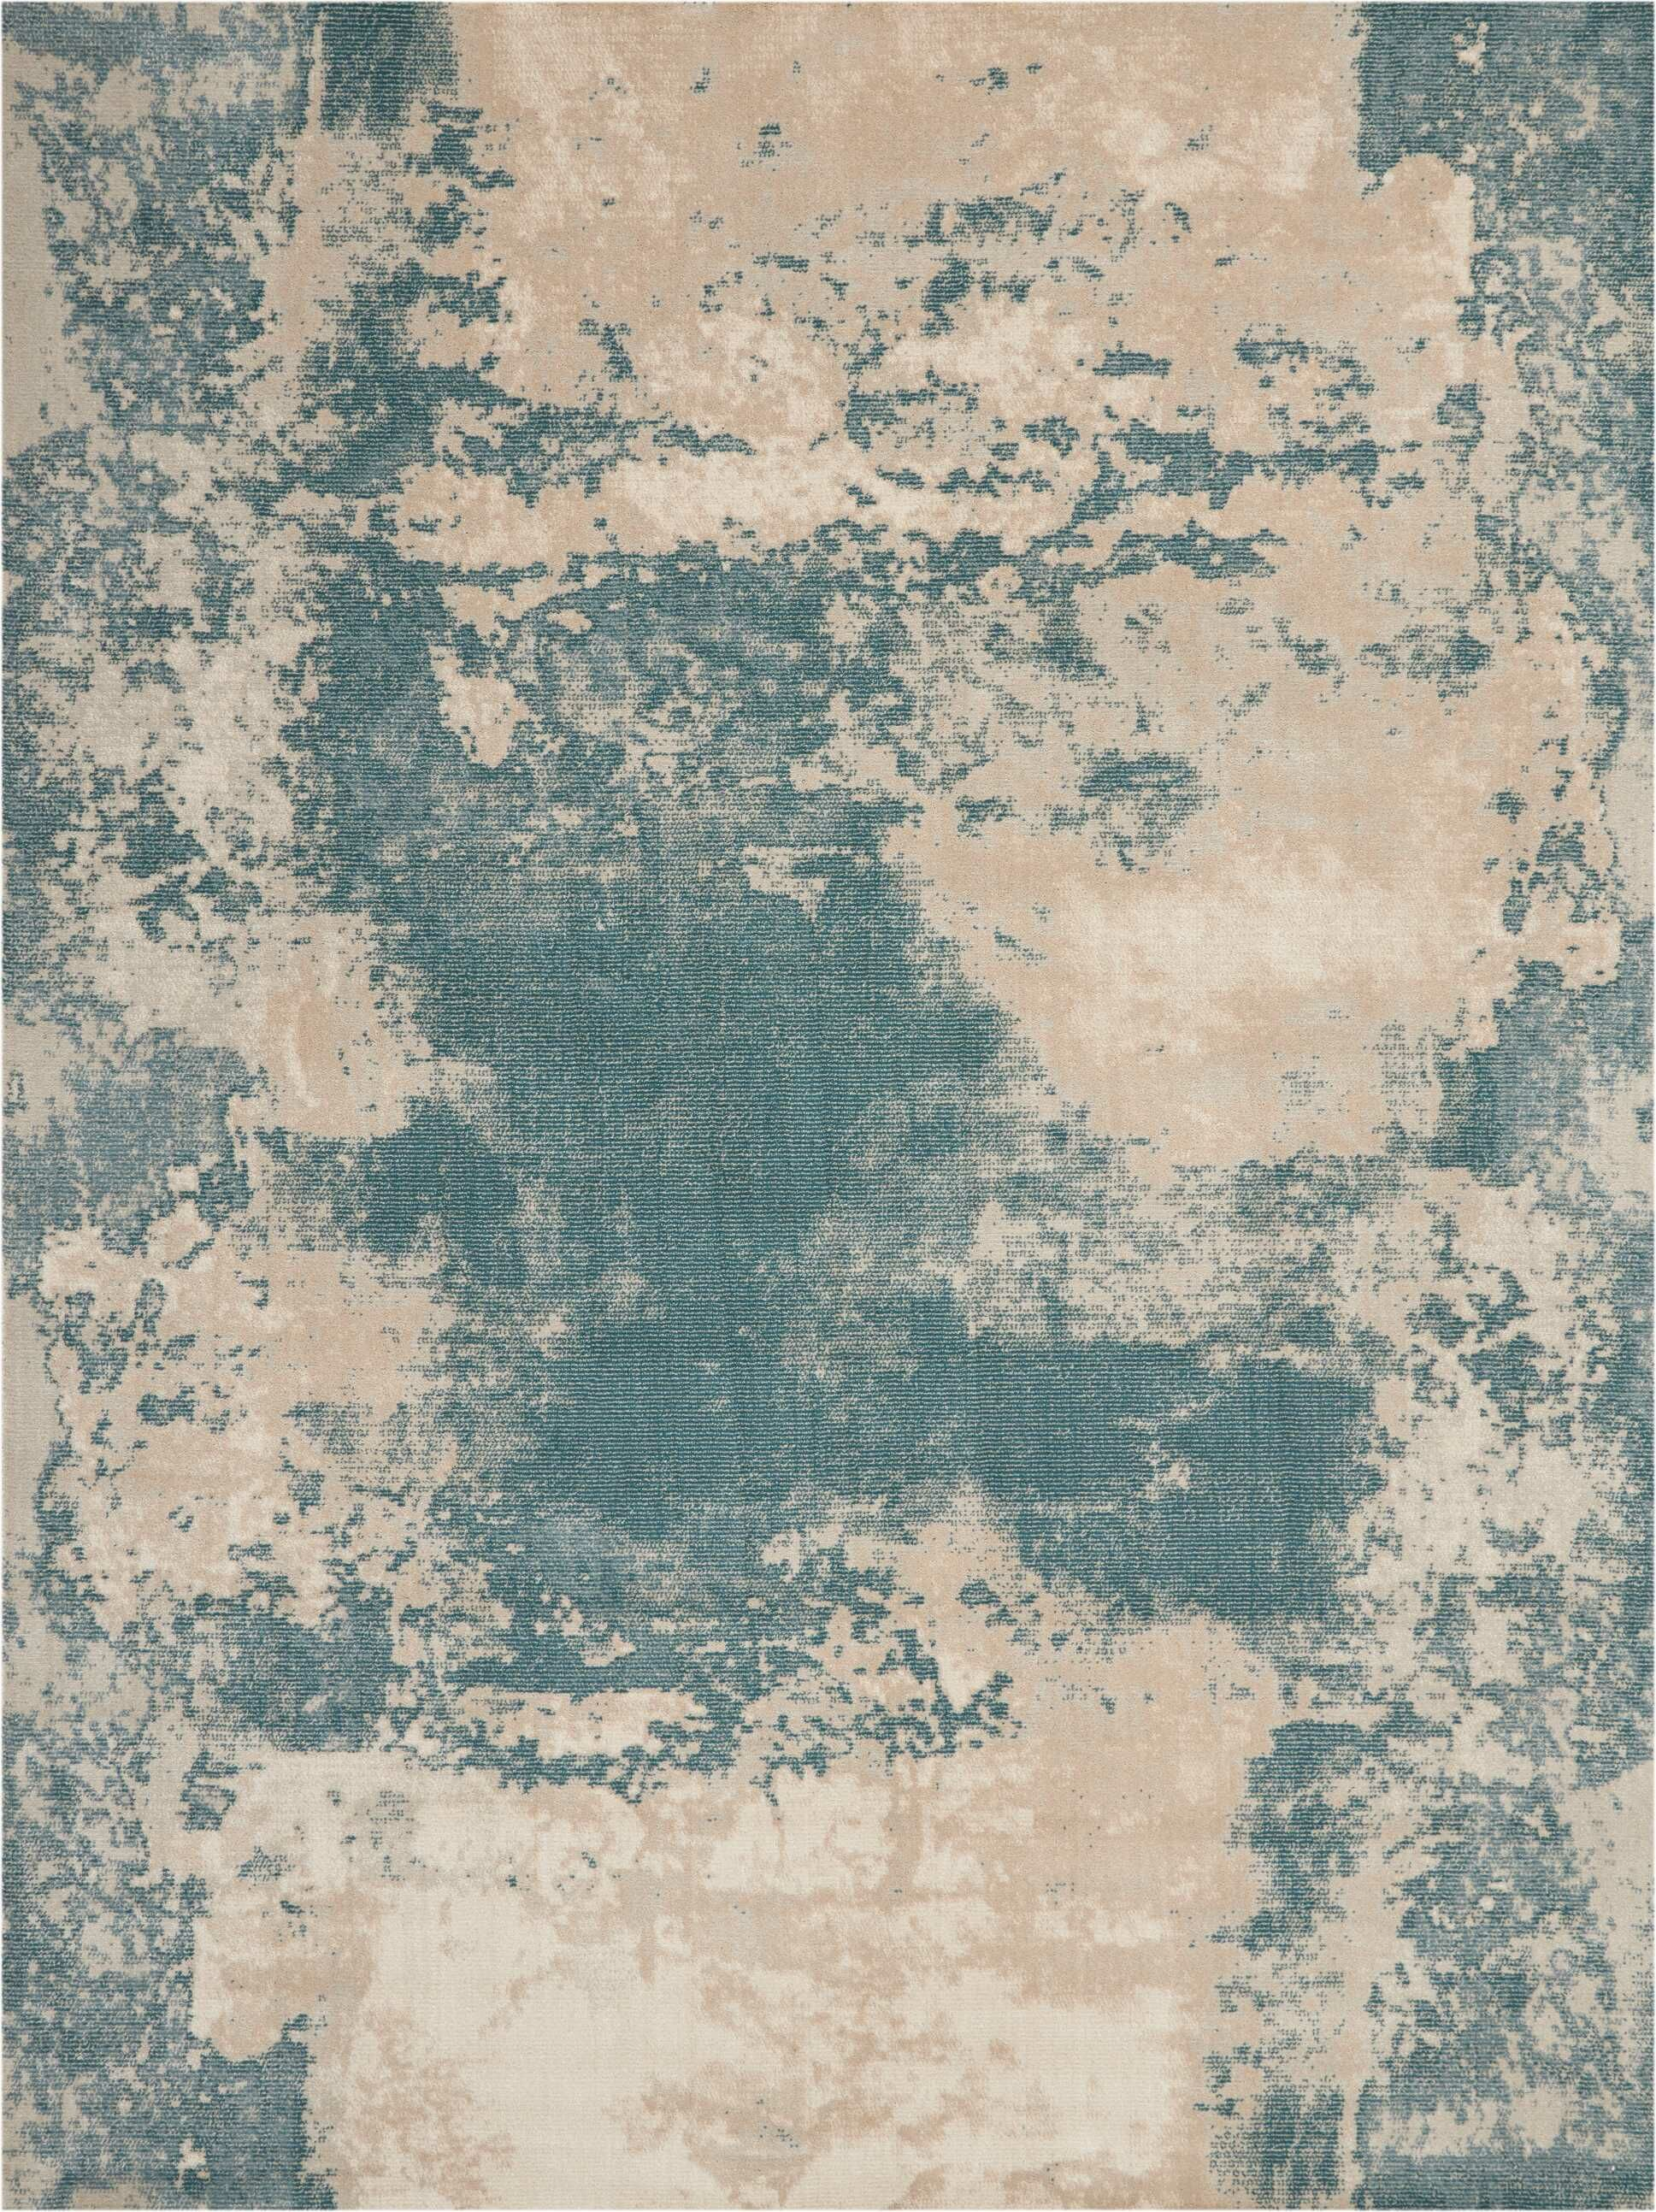 Mana Ivory/Teal Area Rug Rug Size: Rectangle 7'10